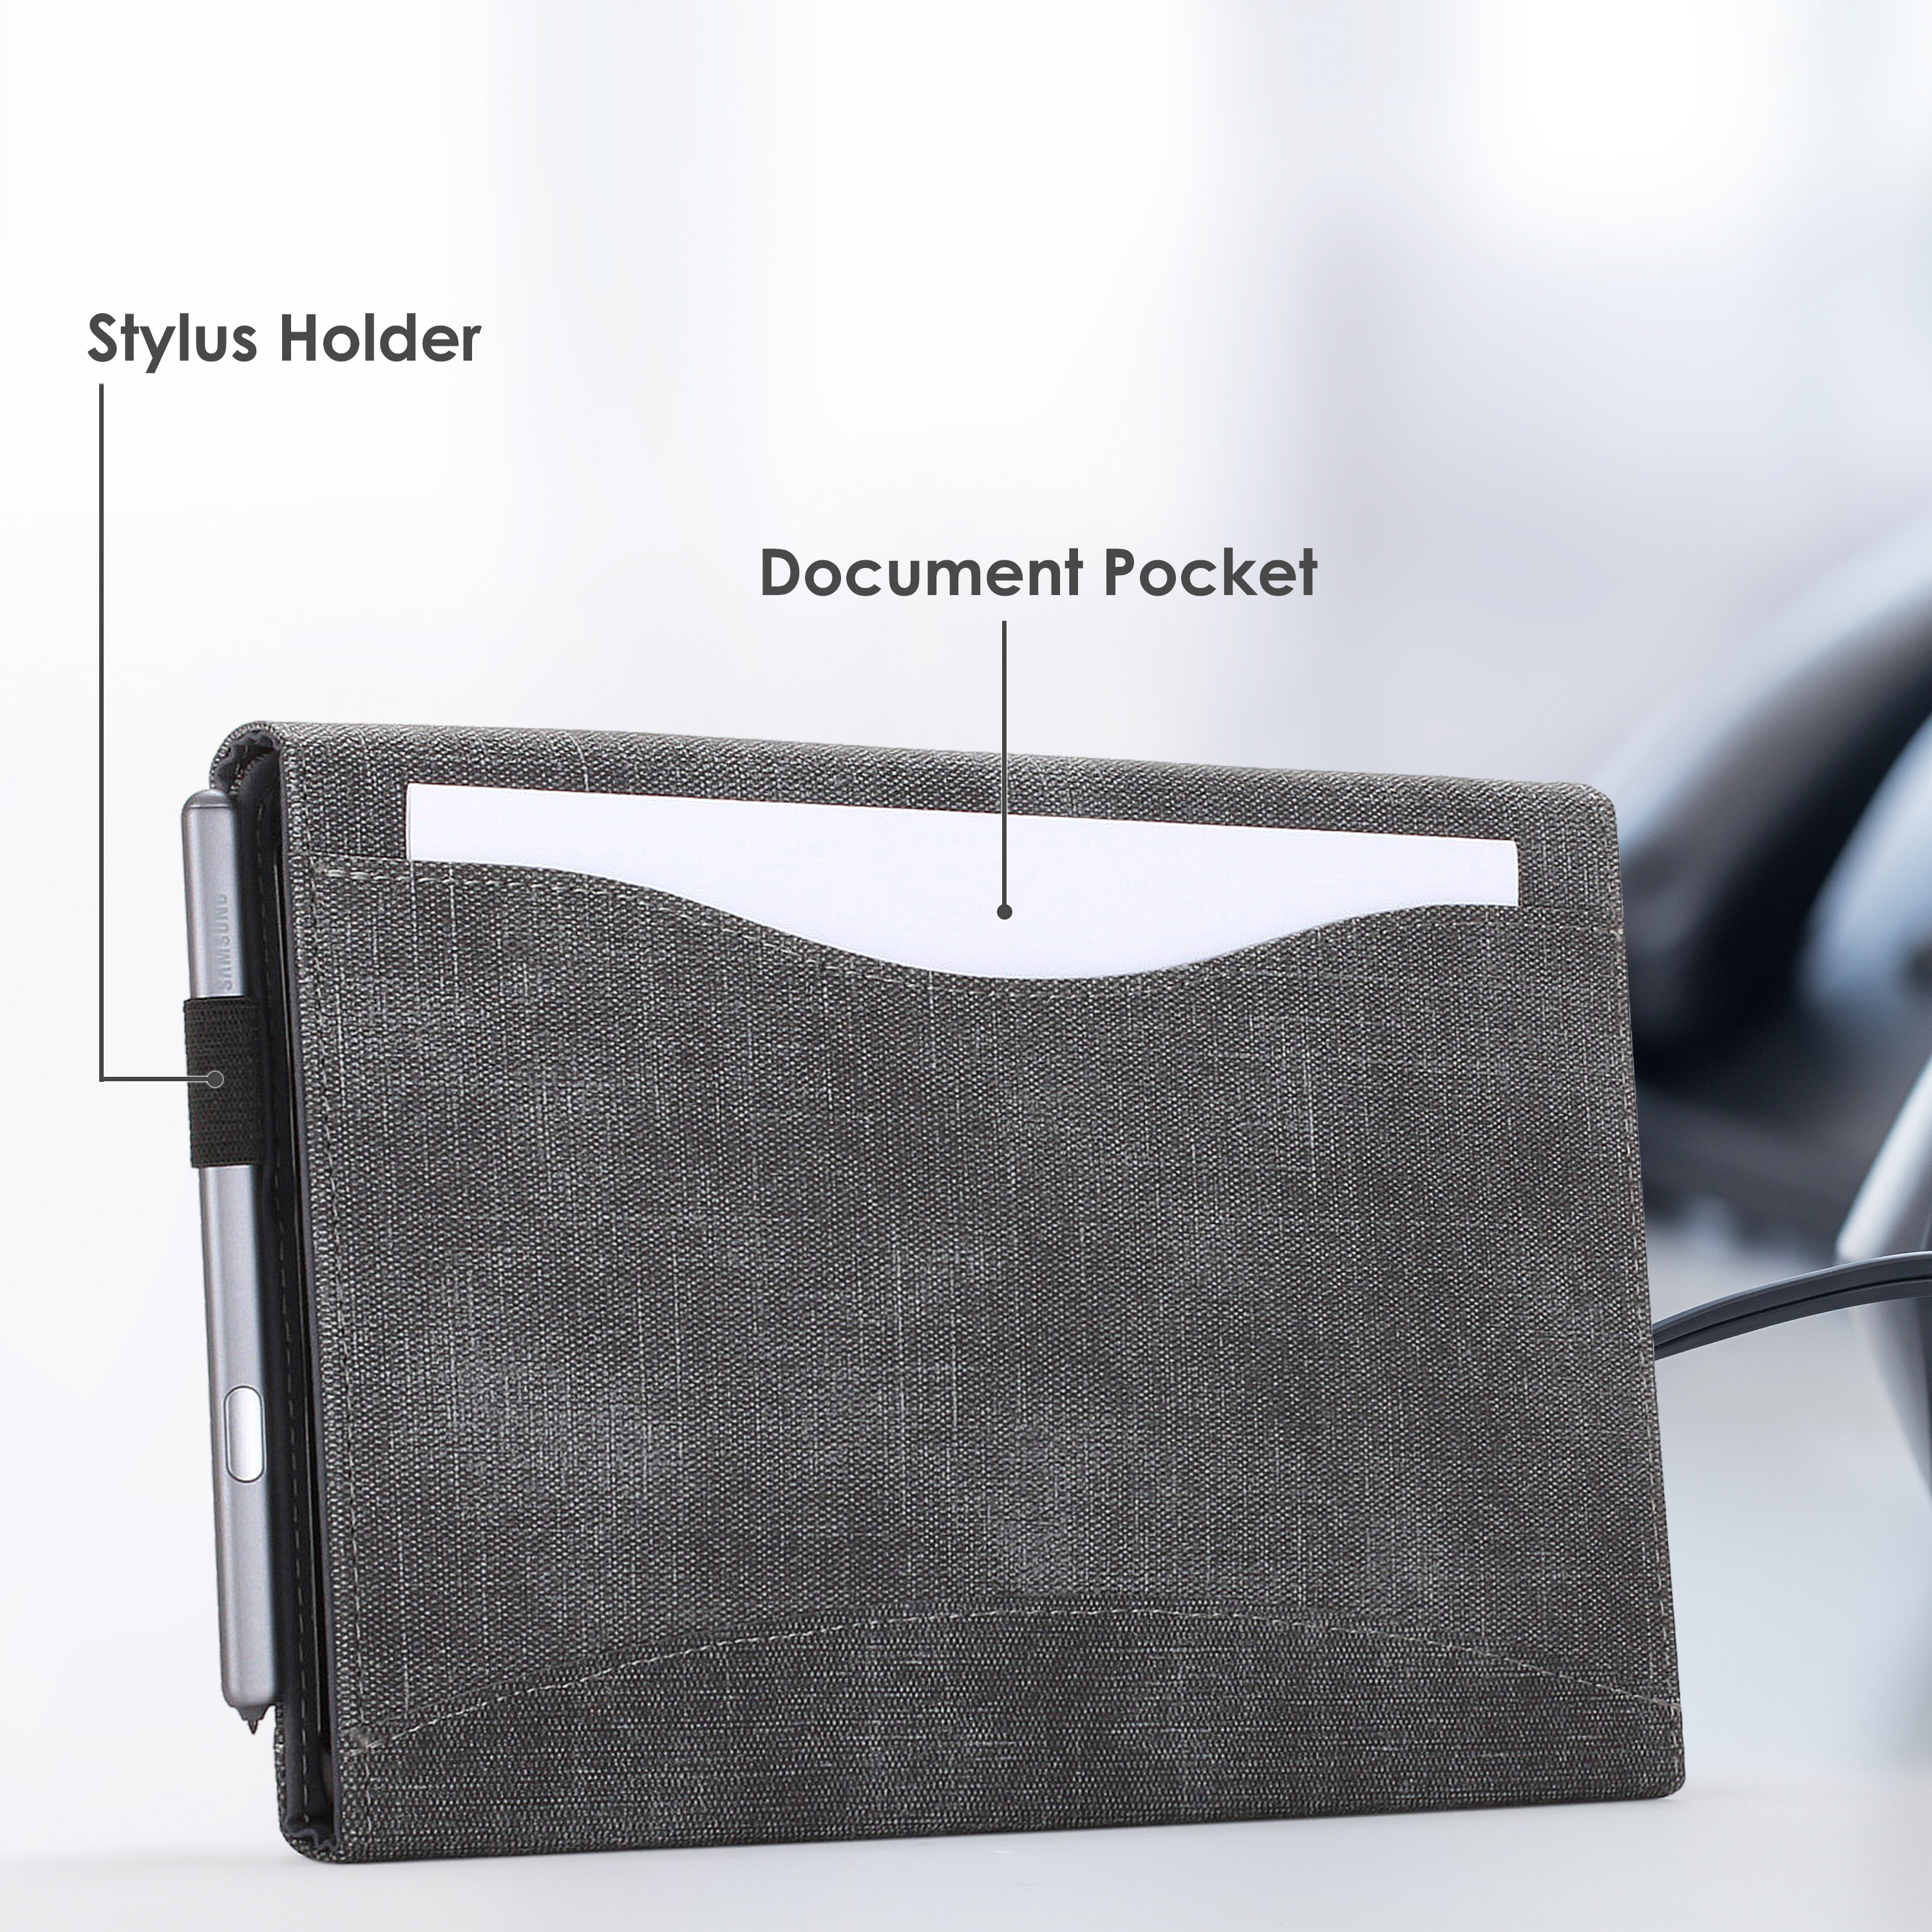 Samsung-Galaxy-Tab-S6-10-5-Case-Cover-Stand-with-Document-Pocket-amp-Sleep-Wake thumbnail 7